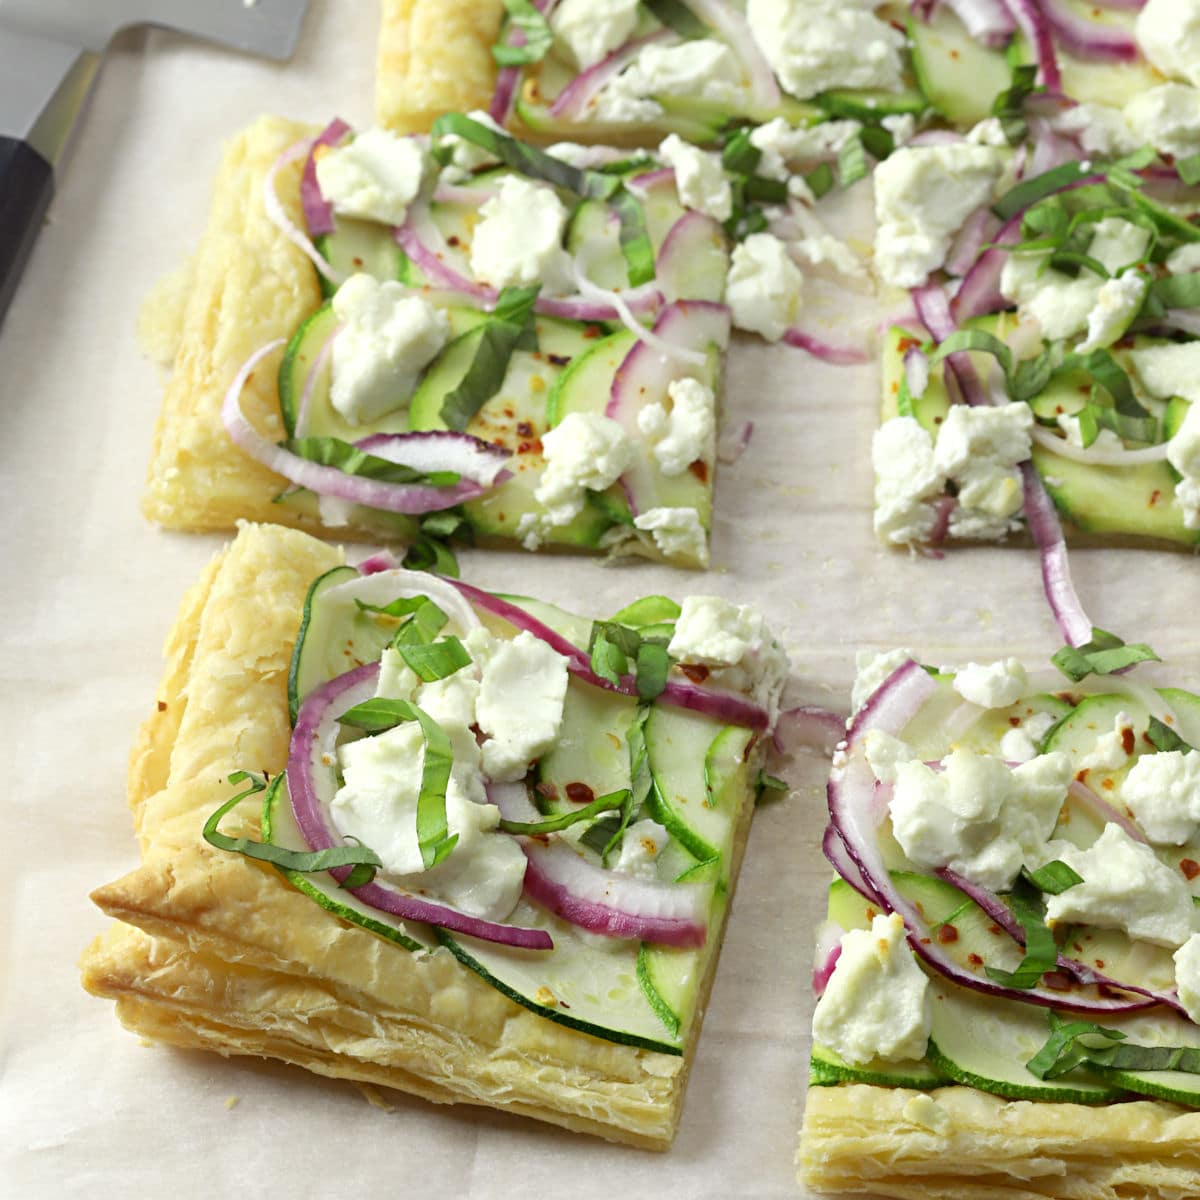 A puff pastry tart sliced into squares on a sheet of parchment paper.